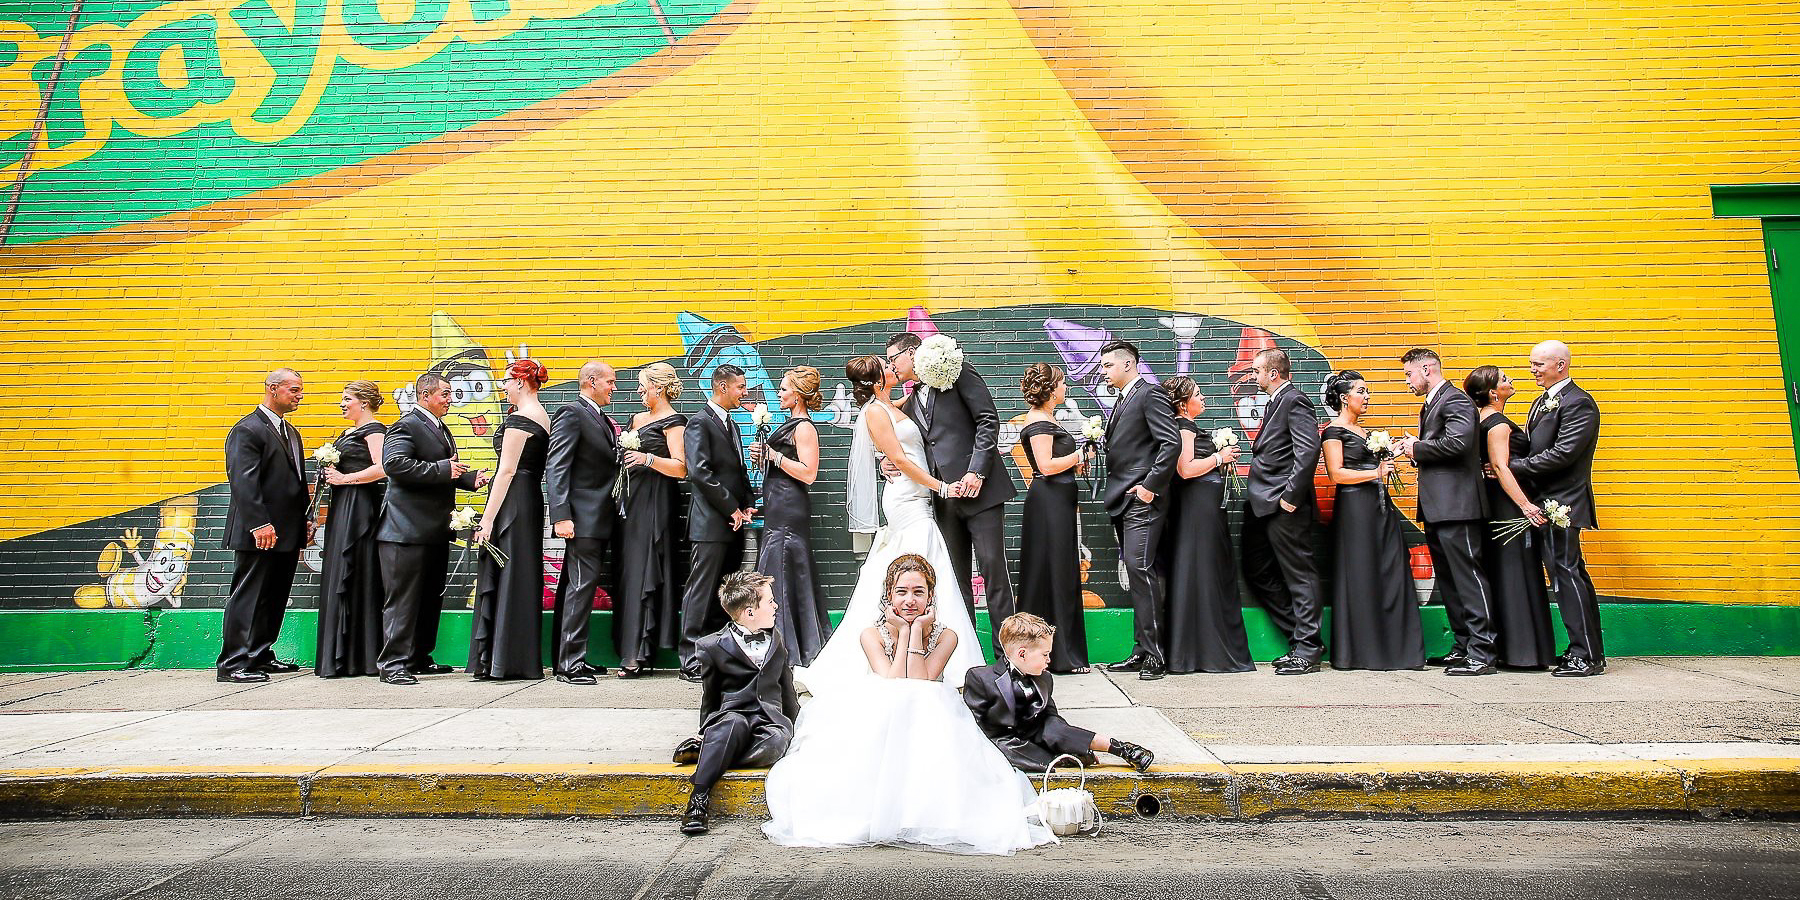 Follow mee! See more at www.srweddingstory.com